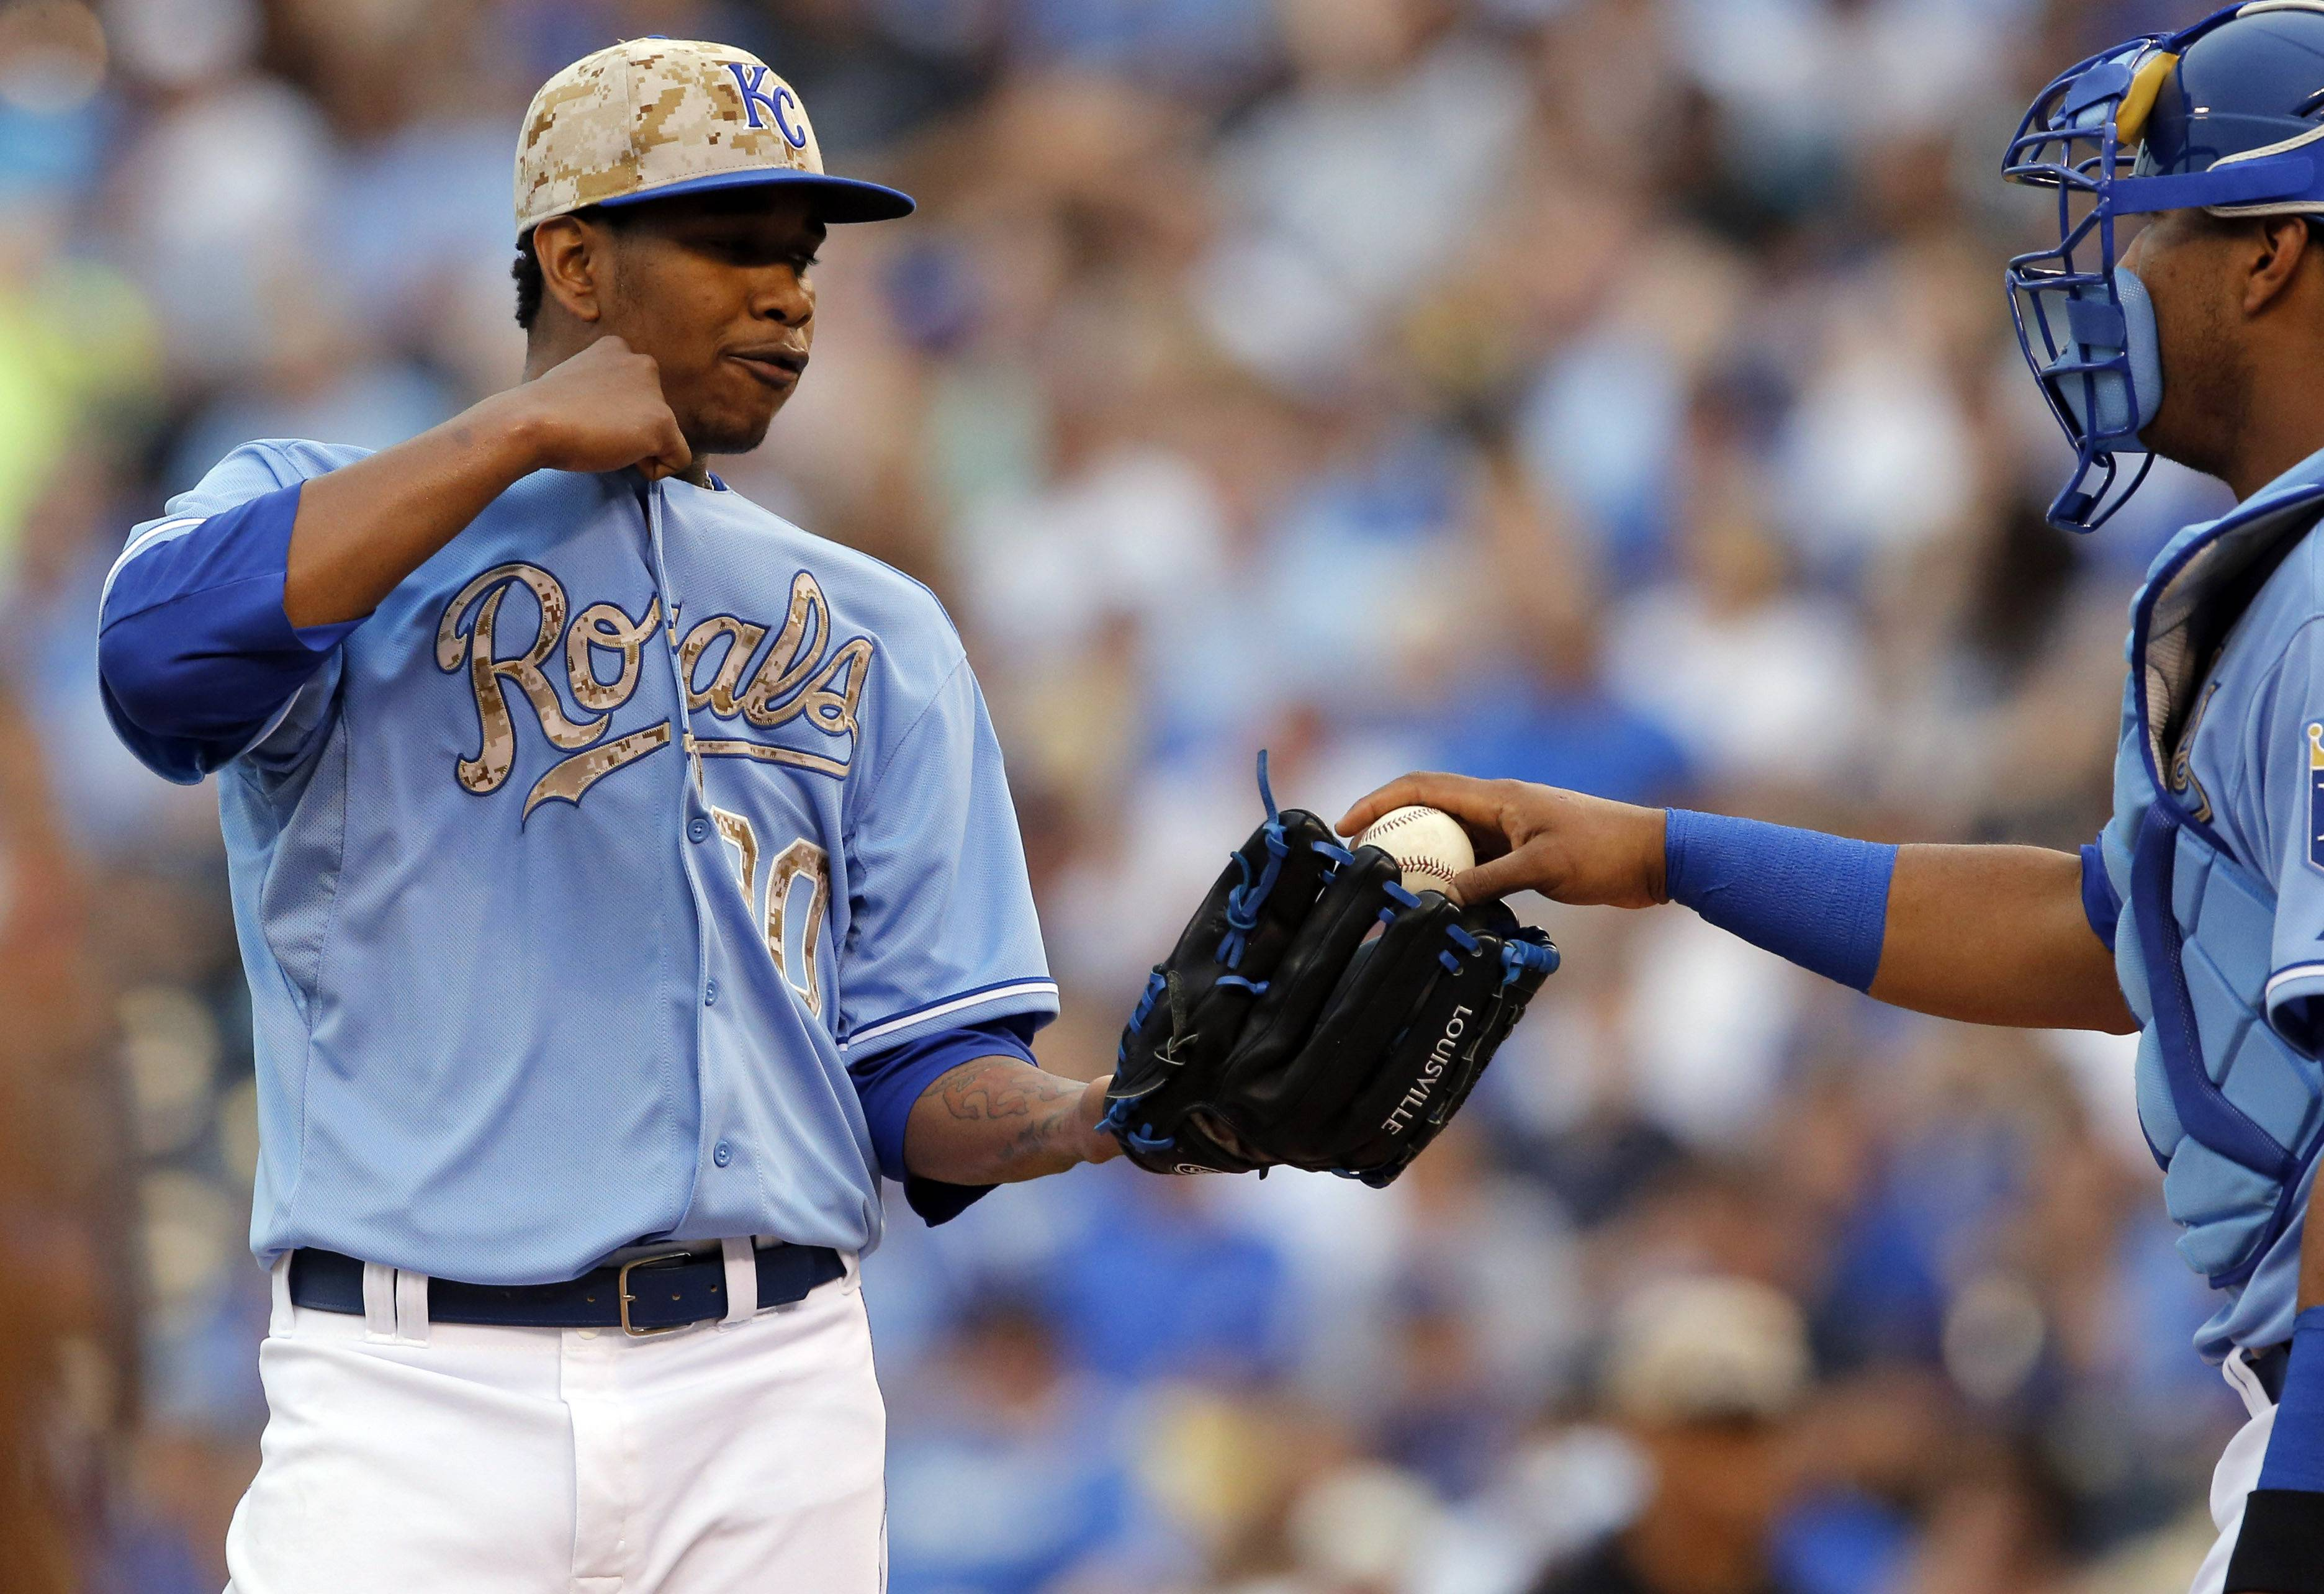 Royals starting pitcher Yordano Ventura, who averages 96 mph on his fastball, has been told to hold back on his fastball in the early innings to avoid stress on his arm.